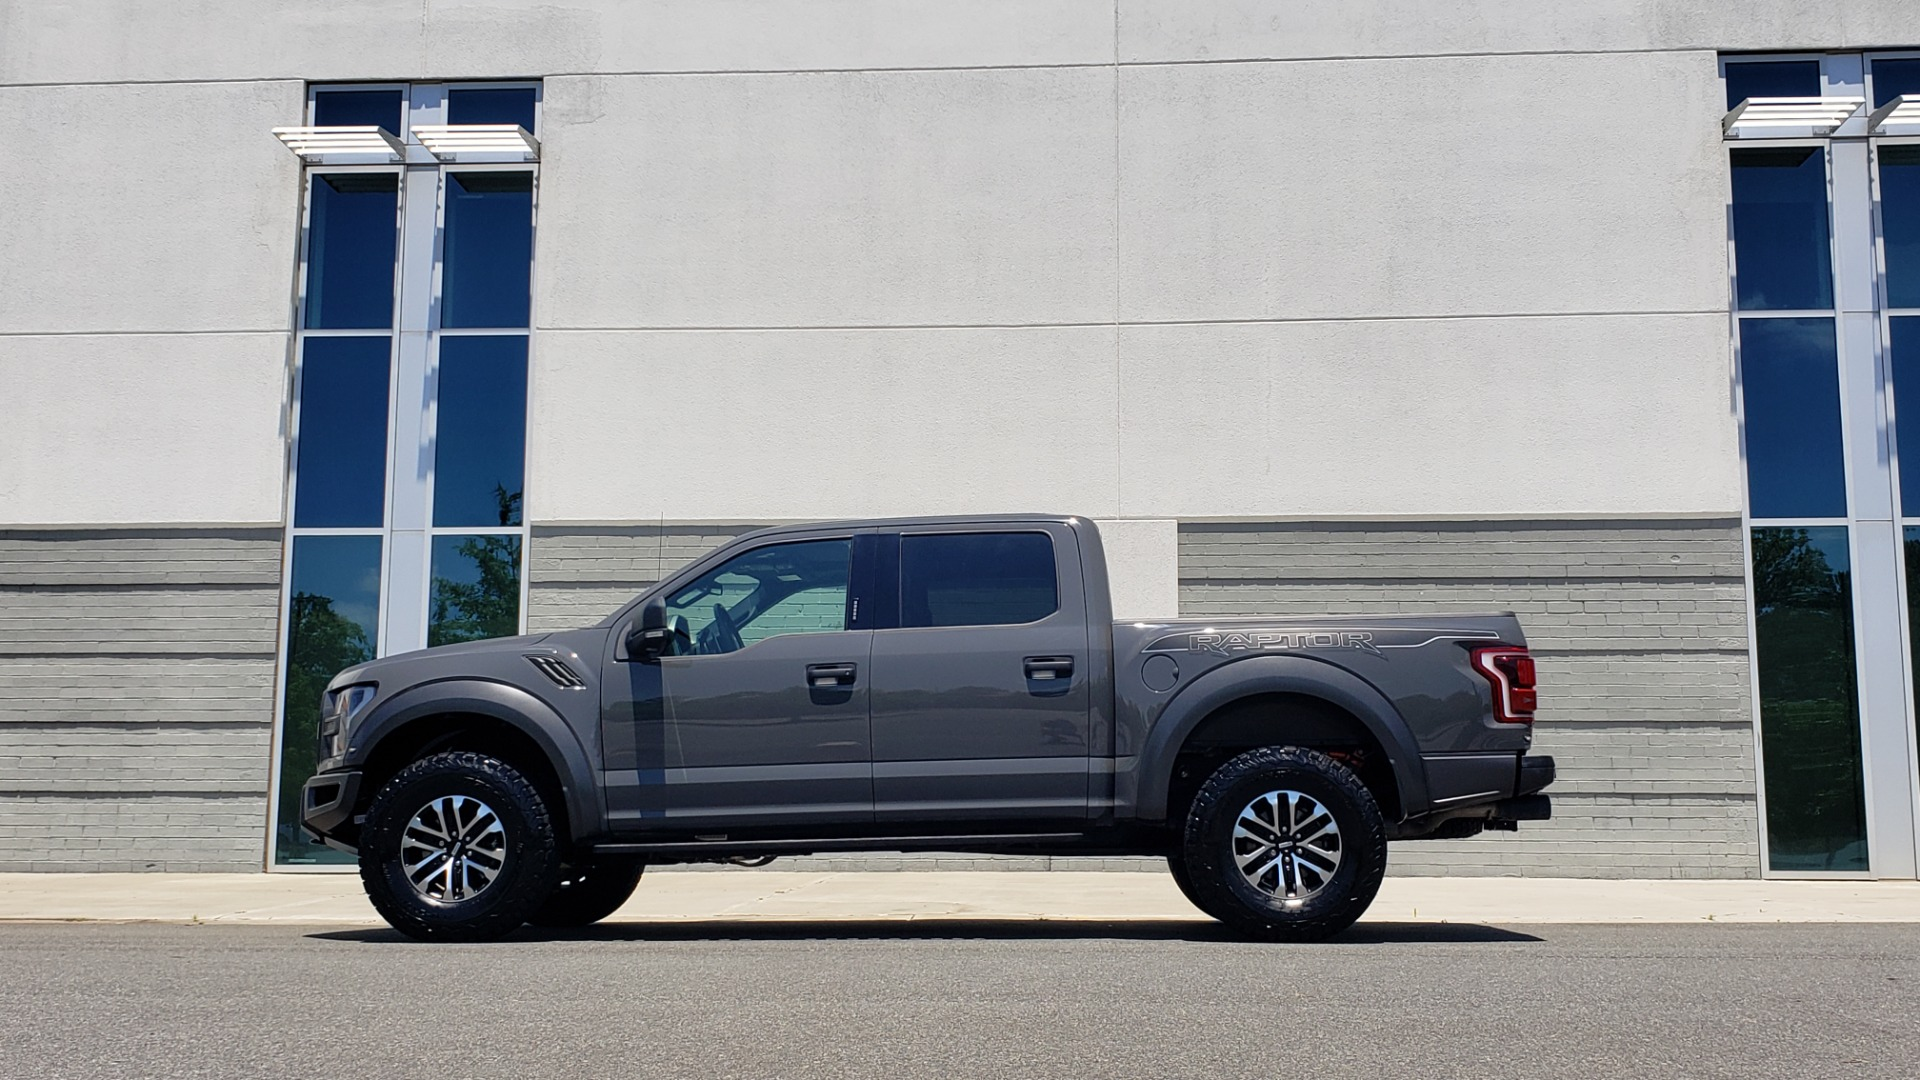 Used 2020 Ford F-150 RAPTOR 4X4 SUPERCREW / 3.5L ECOBOOST / 10-SPD AUTO / SUNROOF / REARVIEW for sale $82,500 at Formula Imports in Charlotte NC 28227 5